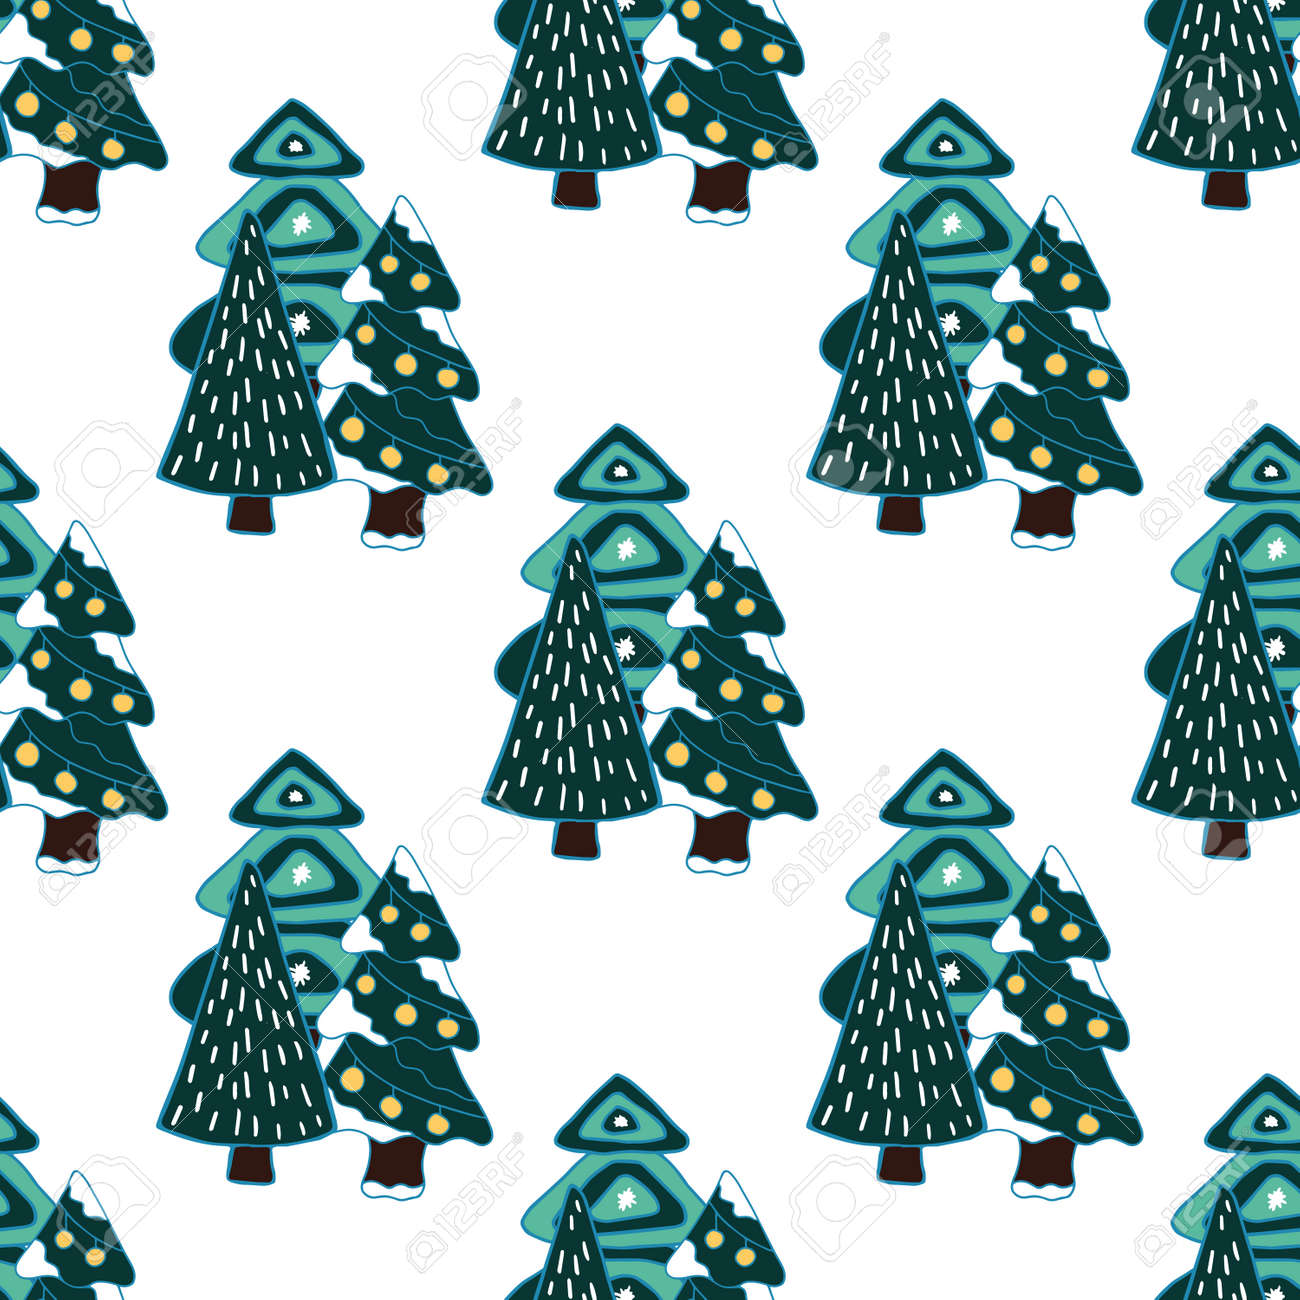 Christmas Nordic Design With Decorative Tree For Decoration Interior Royalty Free Cliparts Vectors And Stock Illustration Image 135964952